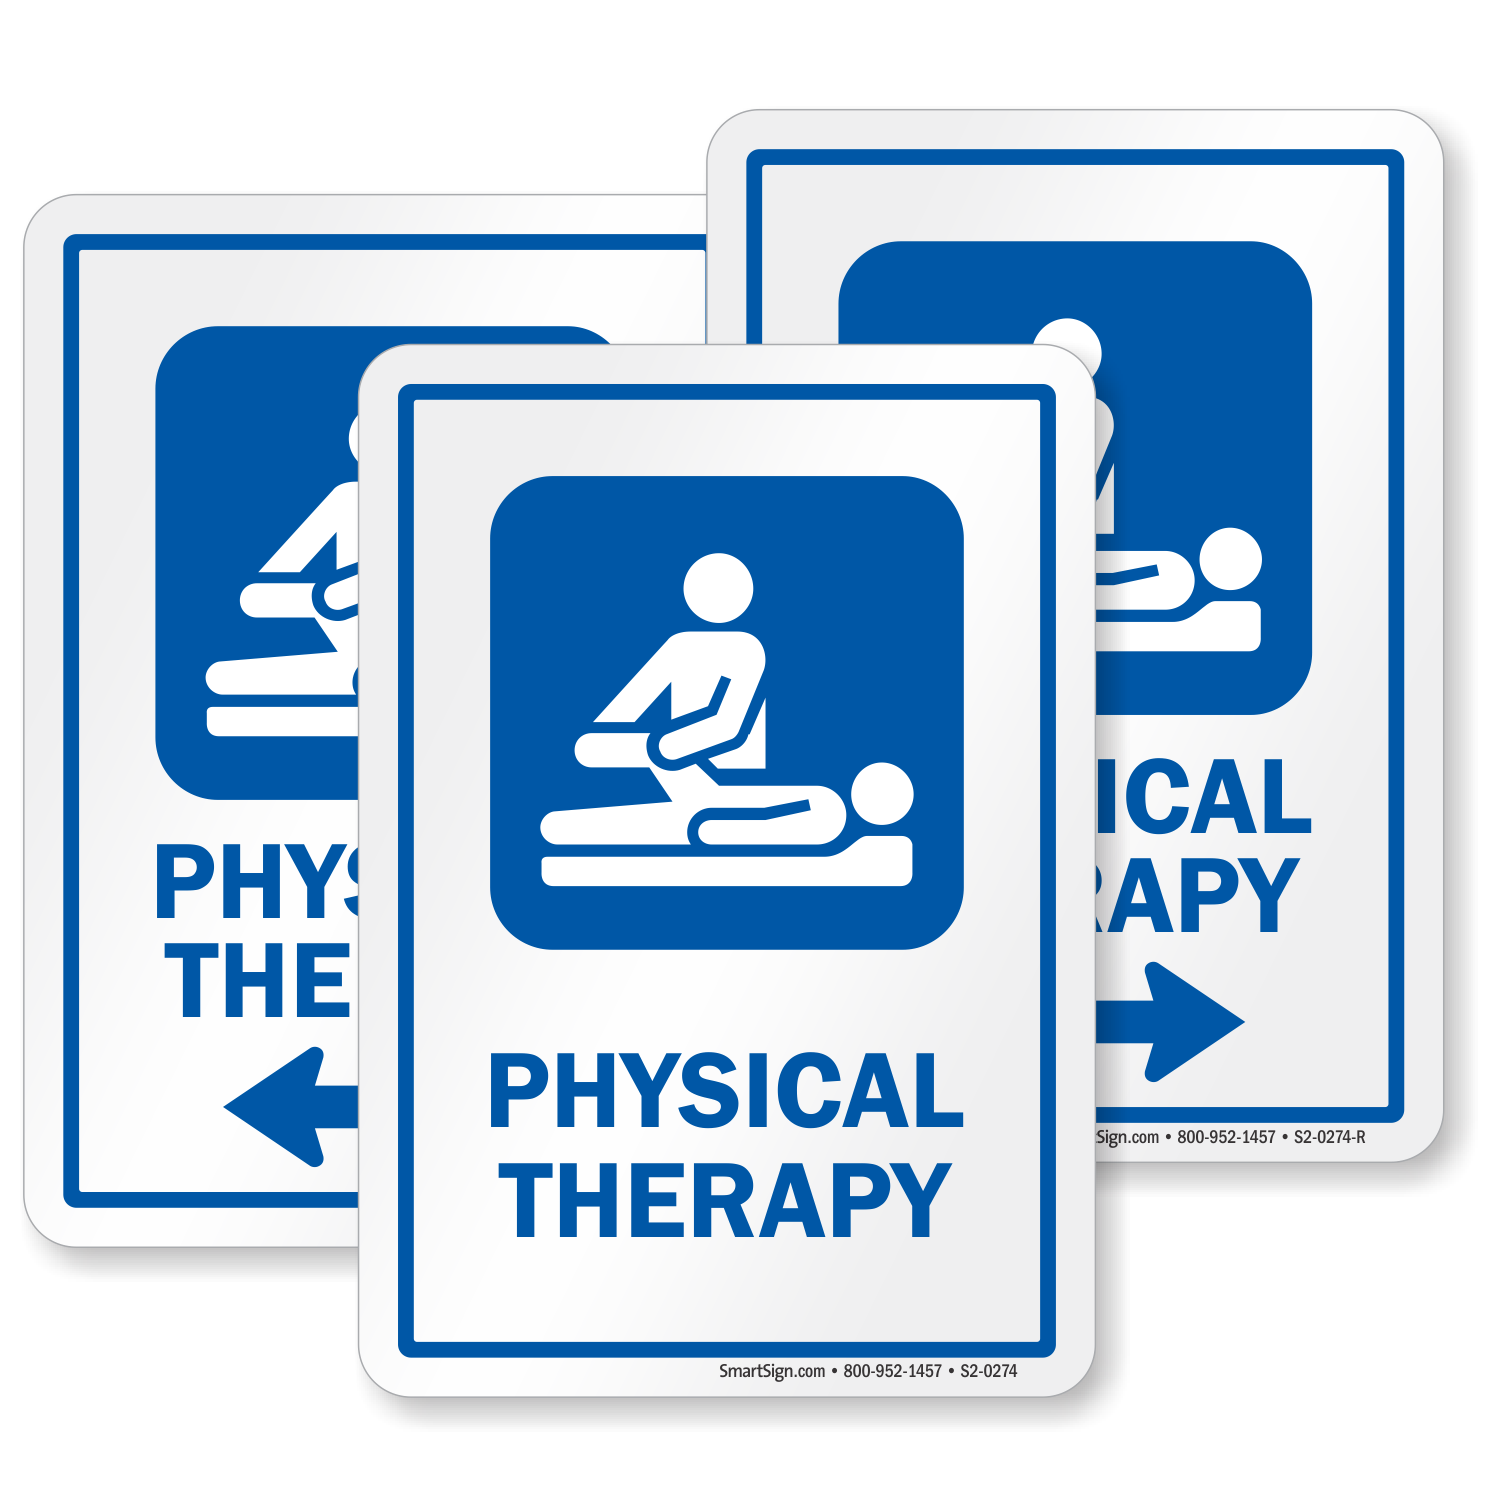 Physical Therapy Signs  Treatment Room Sliders, Massage Signs. Streetscape Murals. Racquet Logo. Letras Lettering. Femenist Stickers. Stackoverflow Stickers. Light Blue Ribbon Banners. Daycare Stickers. Army Boot Decals